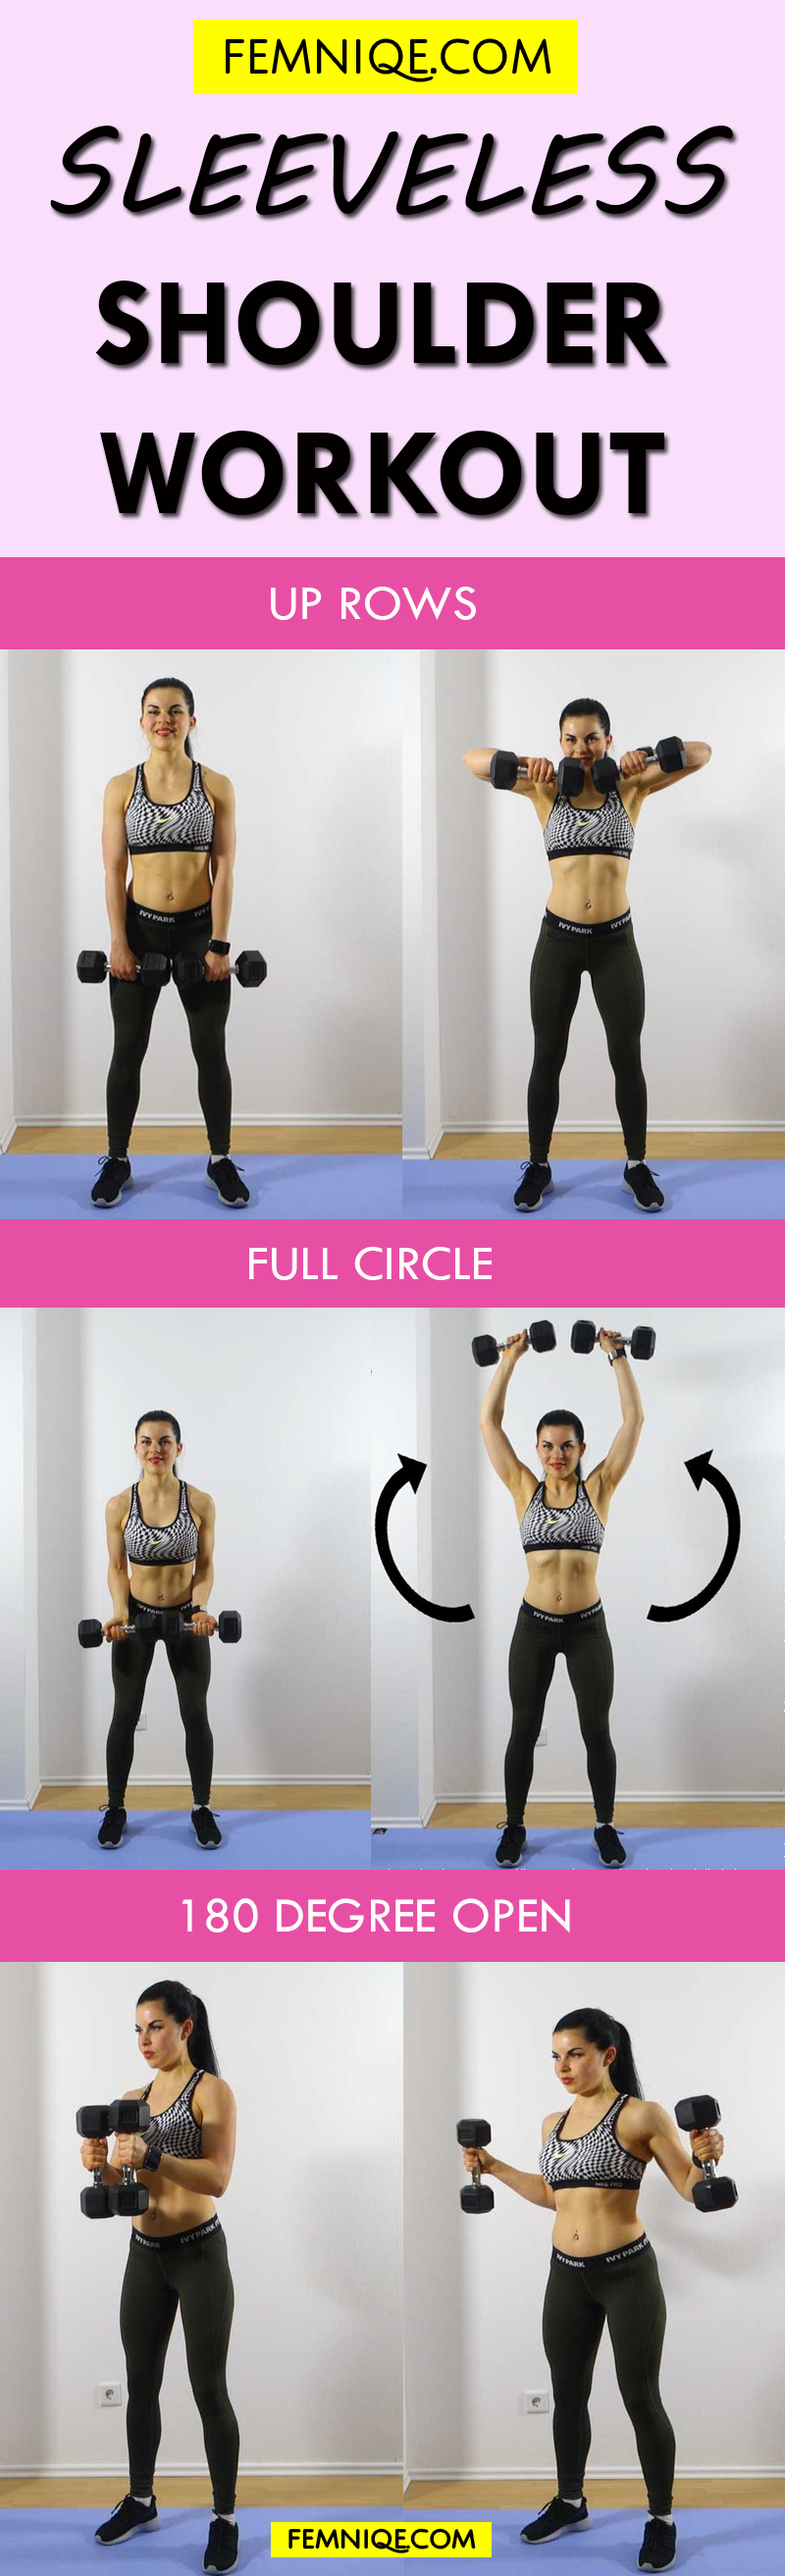 3 At-Home Workouts For Sexy, Shapely Arms